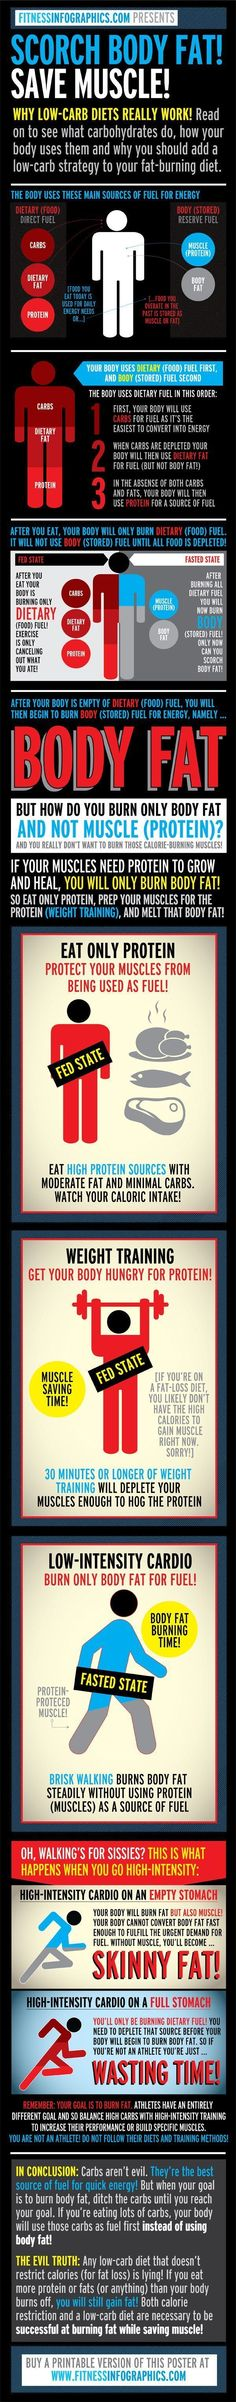 How the body uses different sources of fuel, both dietary (proteins, carbs, fats) and stored (body fat, muscle).